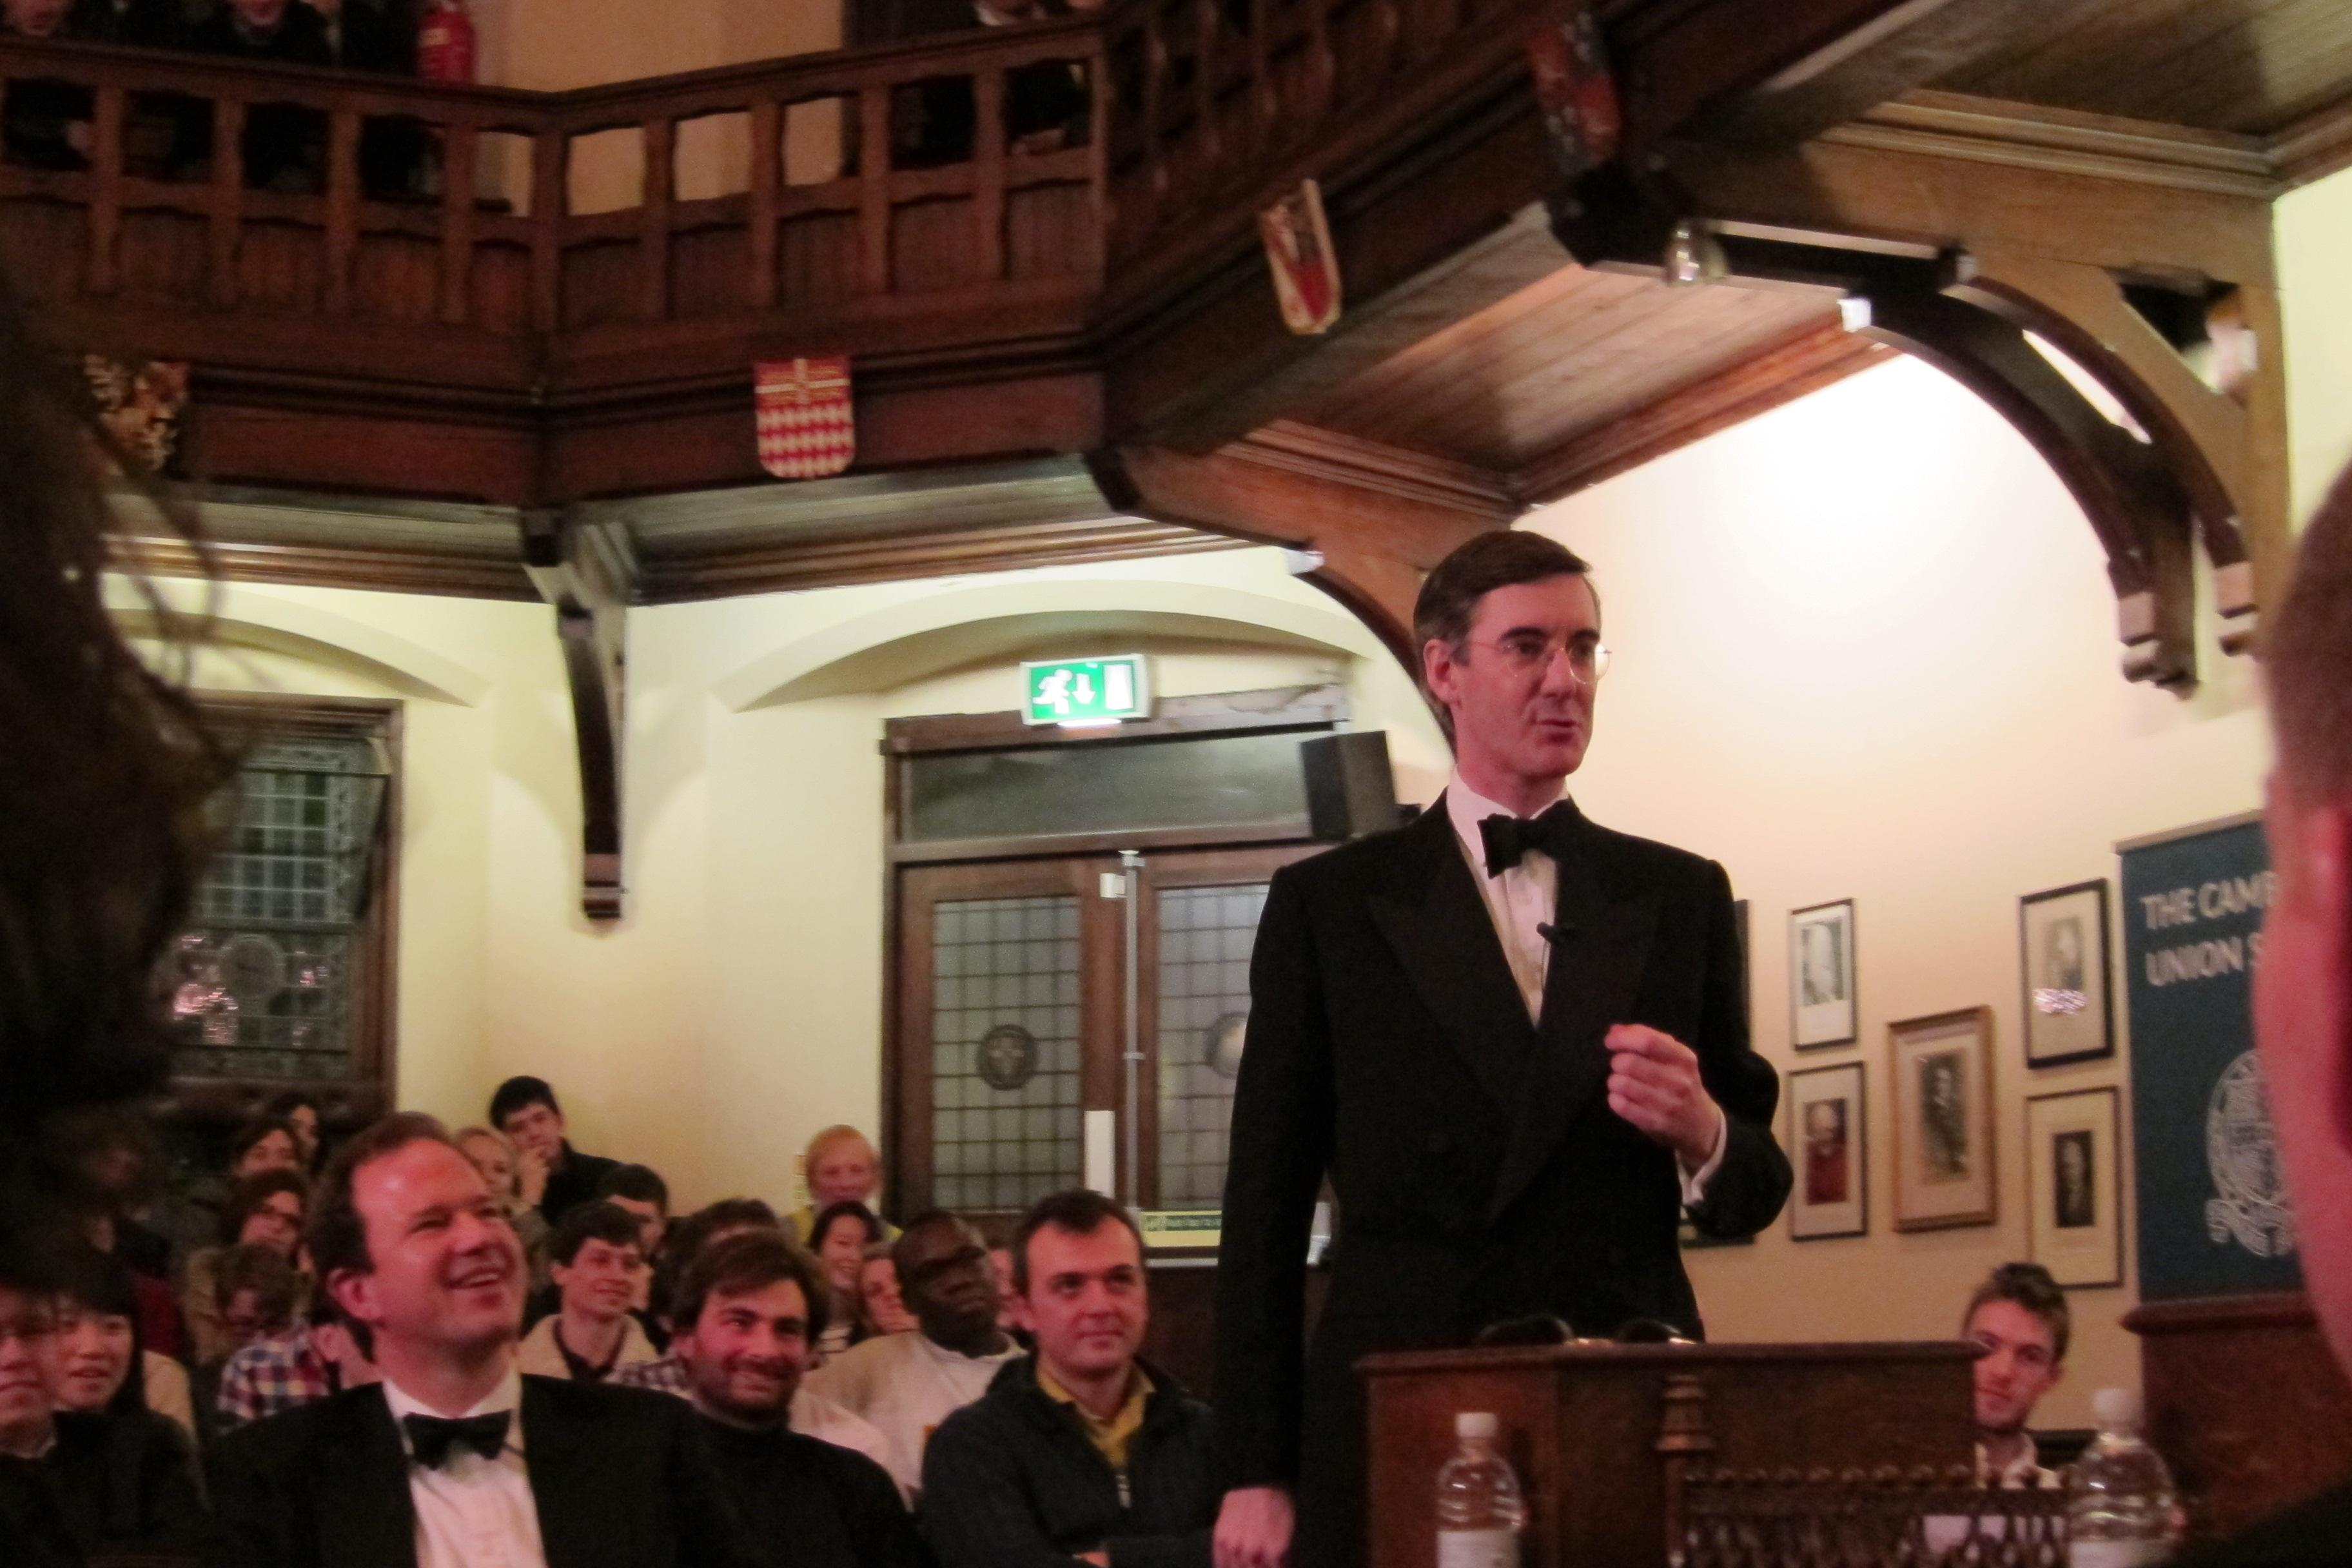 Rees-Mogg addressing the Cambridge Union in 2012. Credit: Cantab12